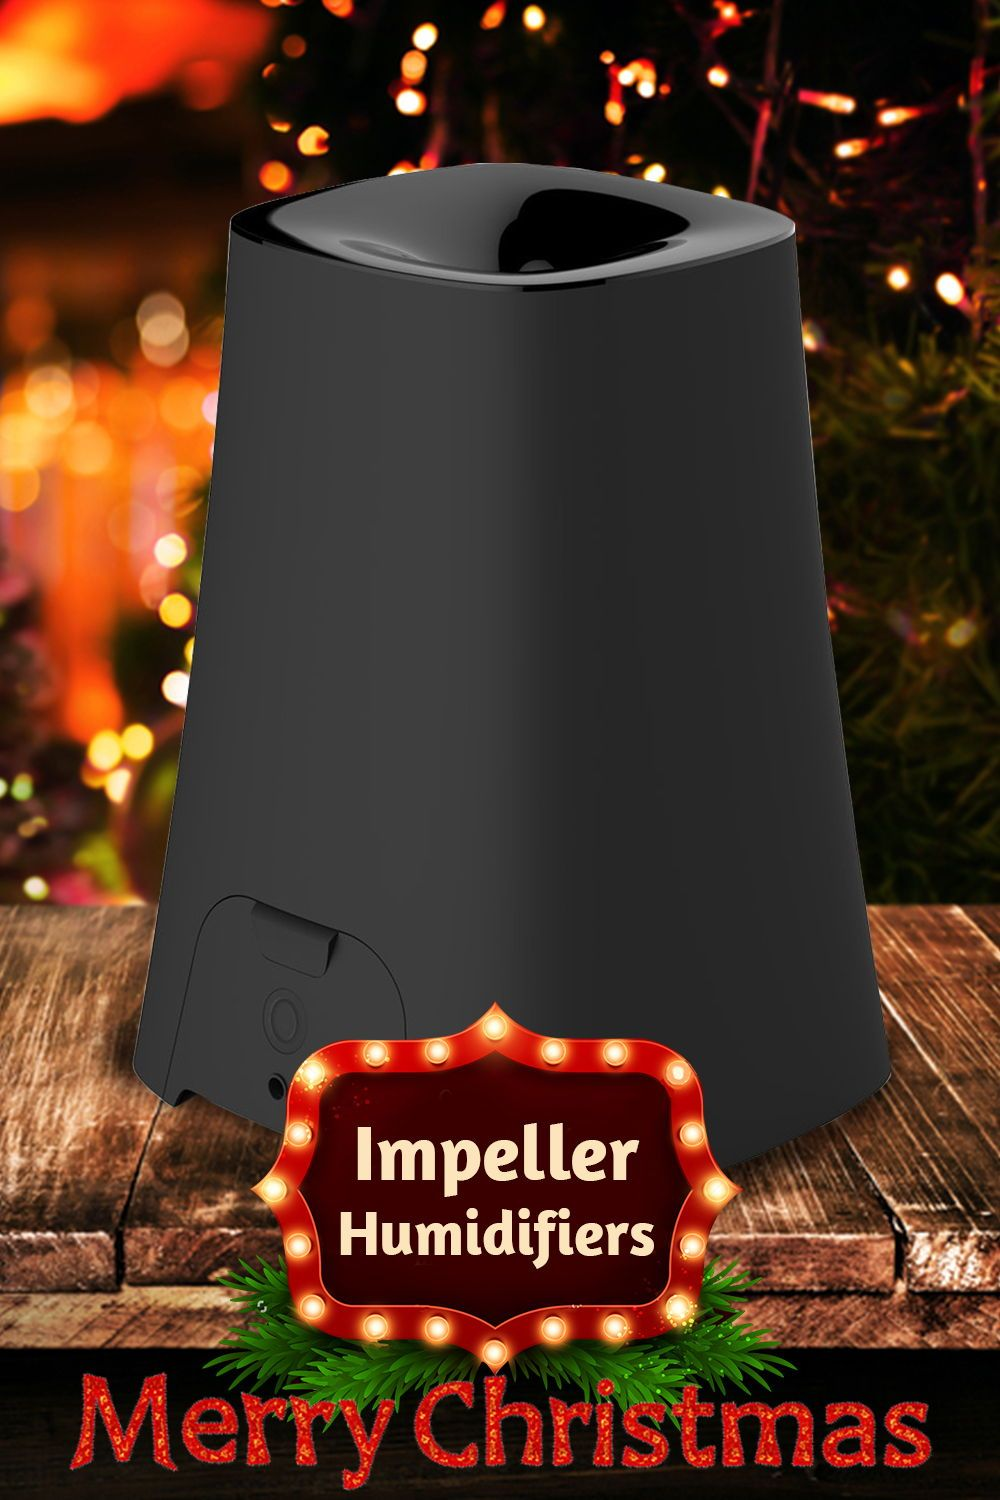 Top 10 Impeller Humidifiers (April 2020) Reviews & Buyer